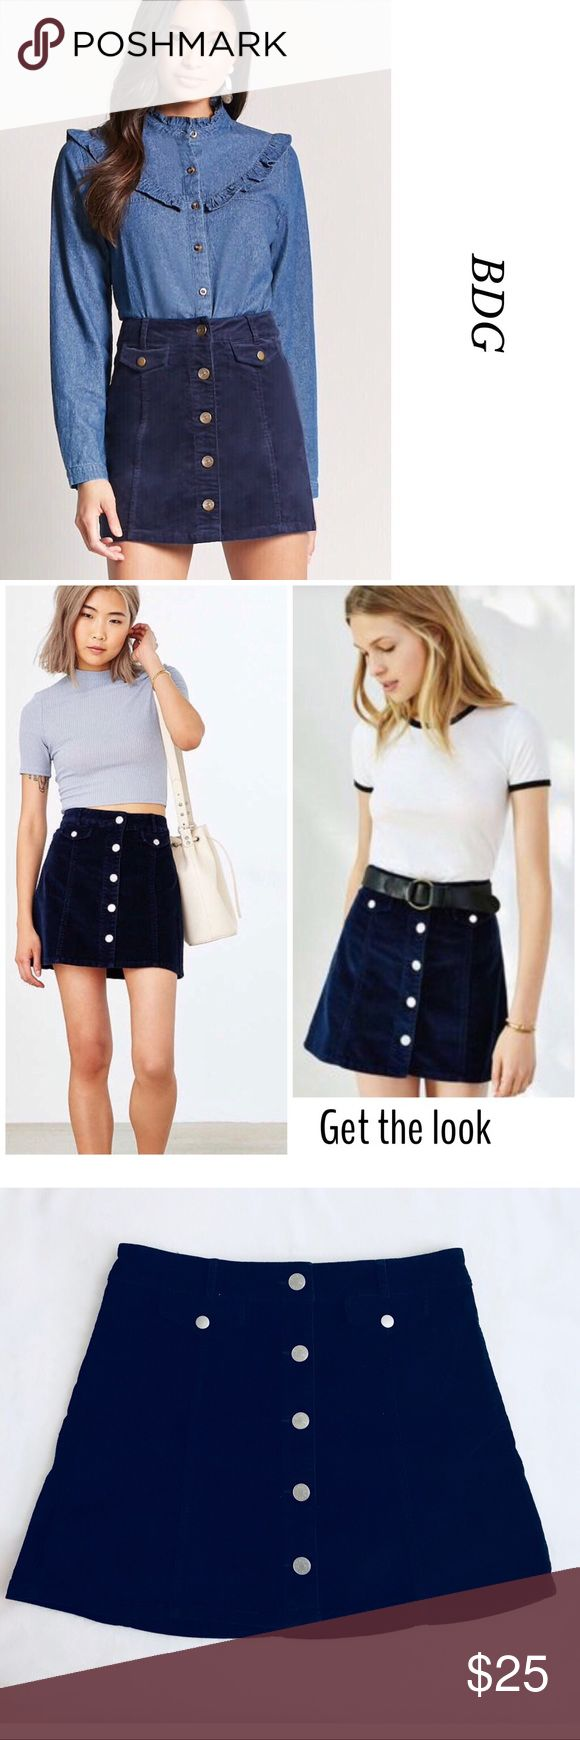 BDG UO WOMEN'S CORDUROY MINI SKIRT IN NAVY NOWT. Gorgeous BDG Urban Outfitters Women's Corduroy Mini Skirt. Perfect for every season. Featuring five front buttons for closure, two front little pockets with snap closure and hoops for belts. Color: Navy blue.  98% Cotton 2% Spandex. Line tag to prevent store returns. Bundle and save. Please, feel free to ask me any questions. Open to offers . Urban Outfitters Skirts Mini